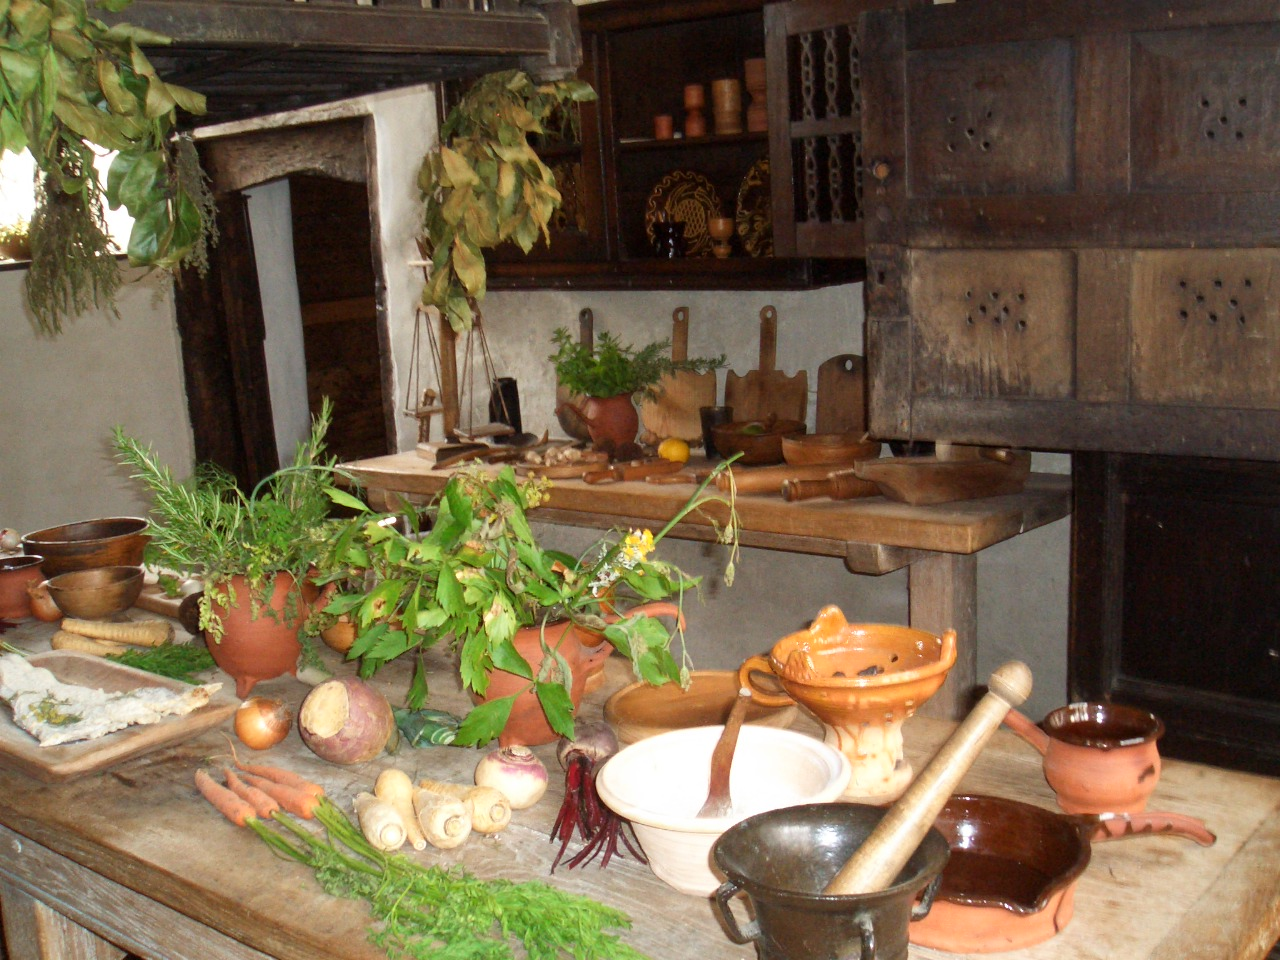 Kitchen With Food slide show for album :: north wales 20-24 july